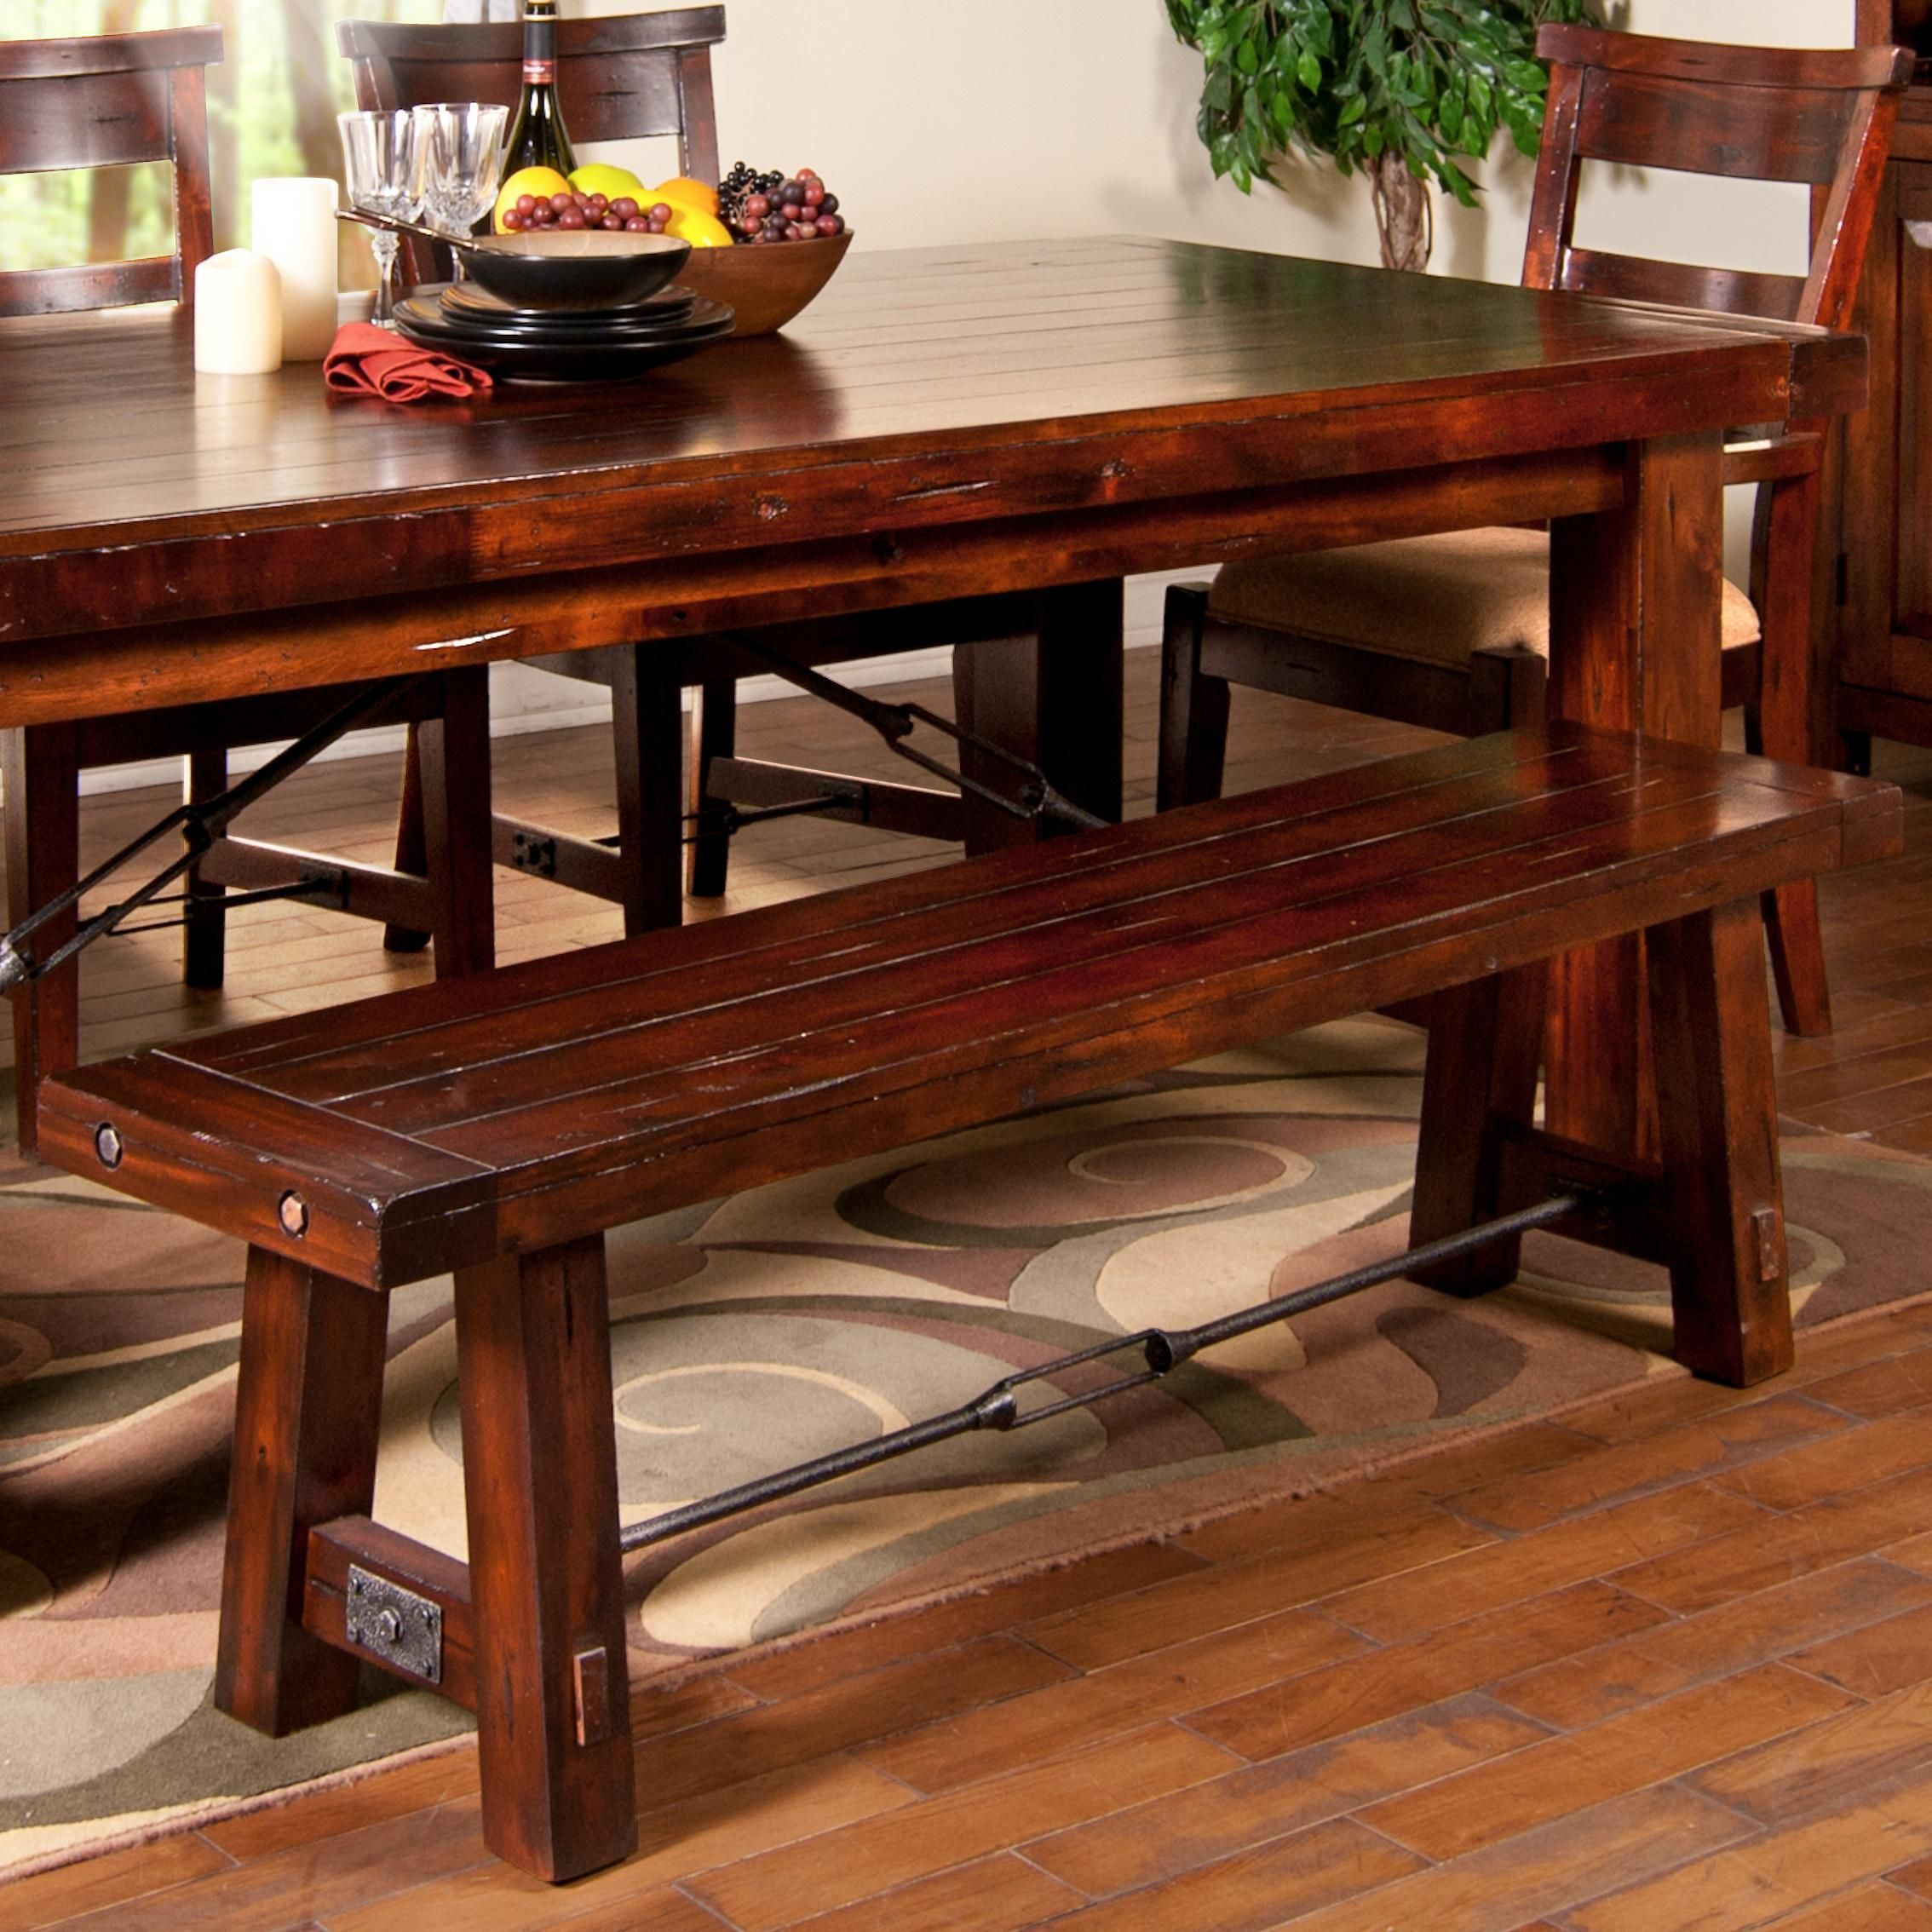 Vineyard Dining Bench With Wood Seat And Metal Stretcher From Wolf Furniture Kitchen Table Bench Dining Bench Stone Dining Table